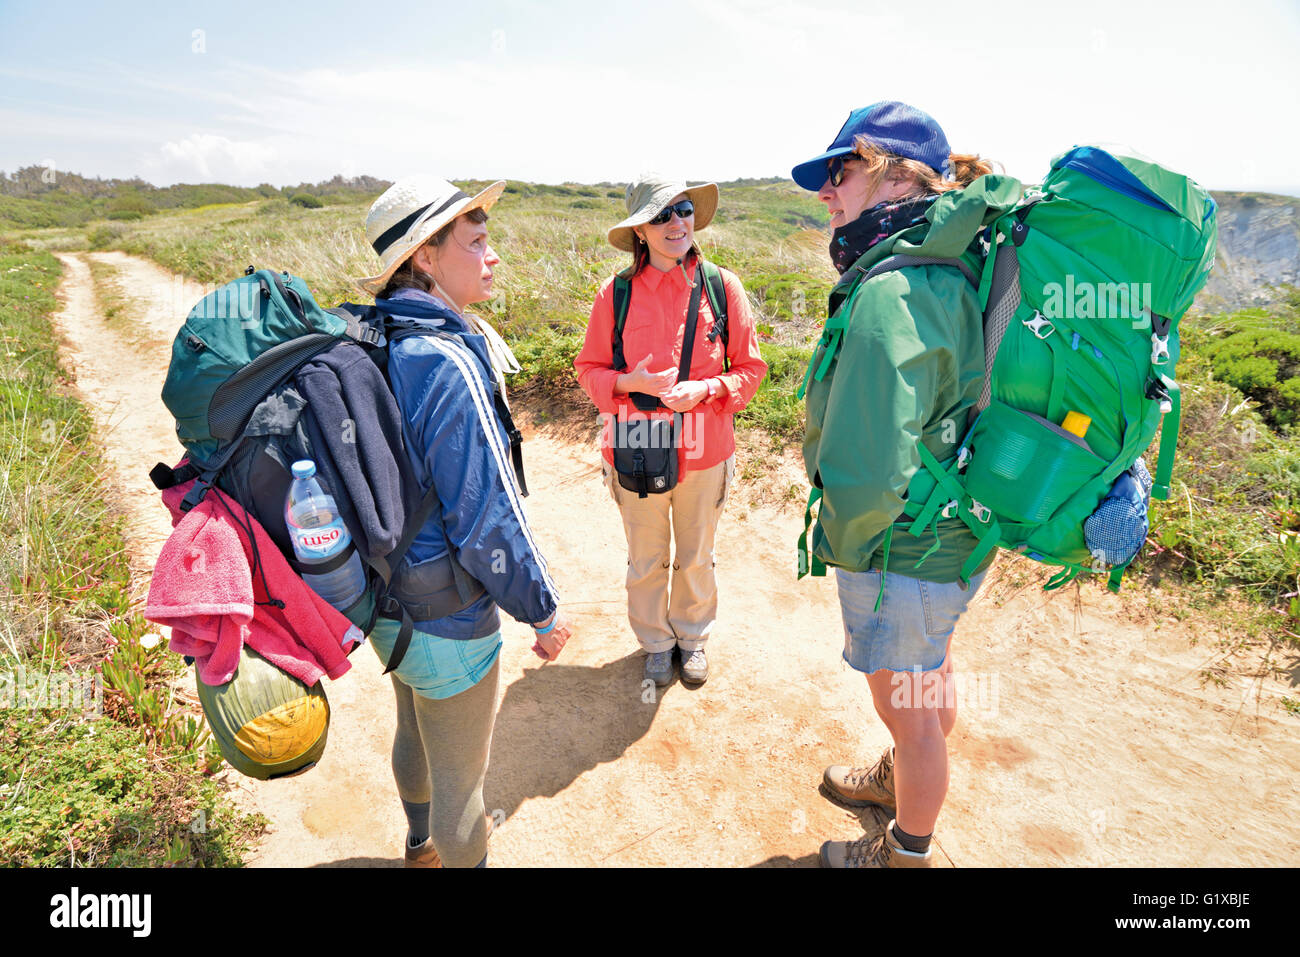 Portugal, Alentejo: Casual meeting of three female walkers on the coastal trail of trekking route Rota Vicentina - Stock Image